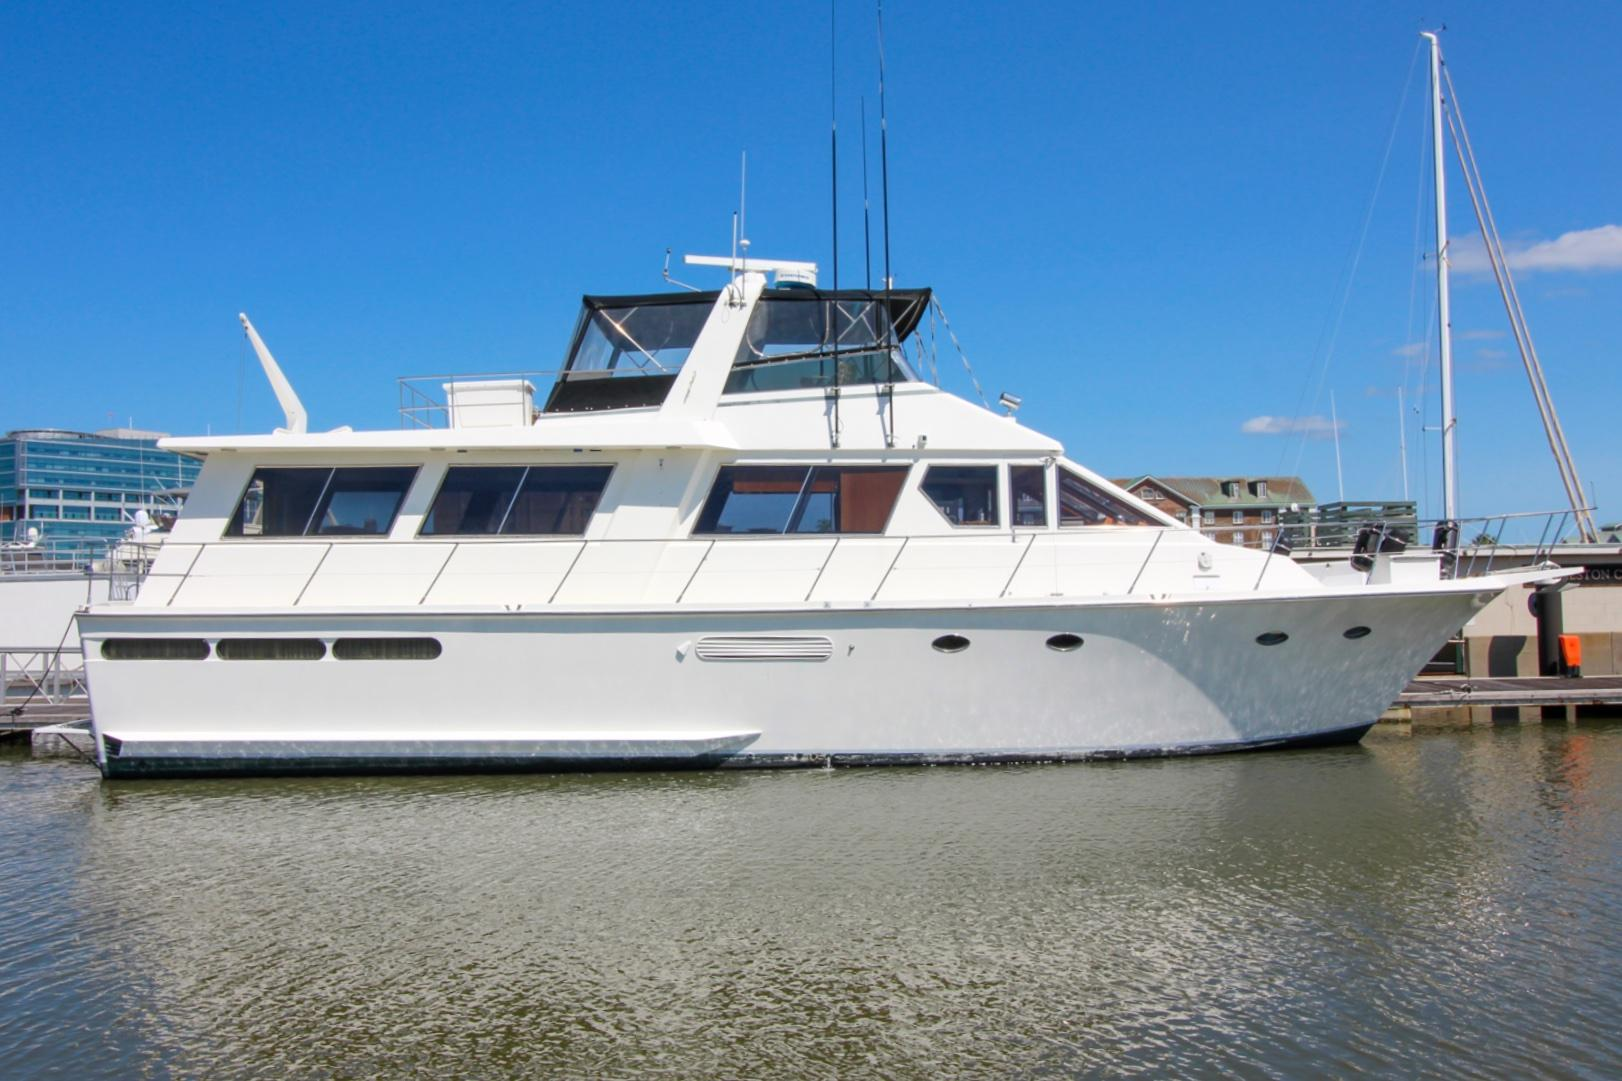 1988 Viking 63 Extended Aft Deck Motor Yacht